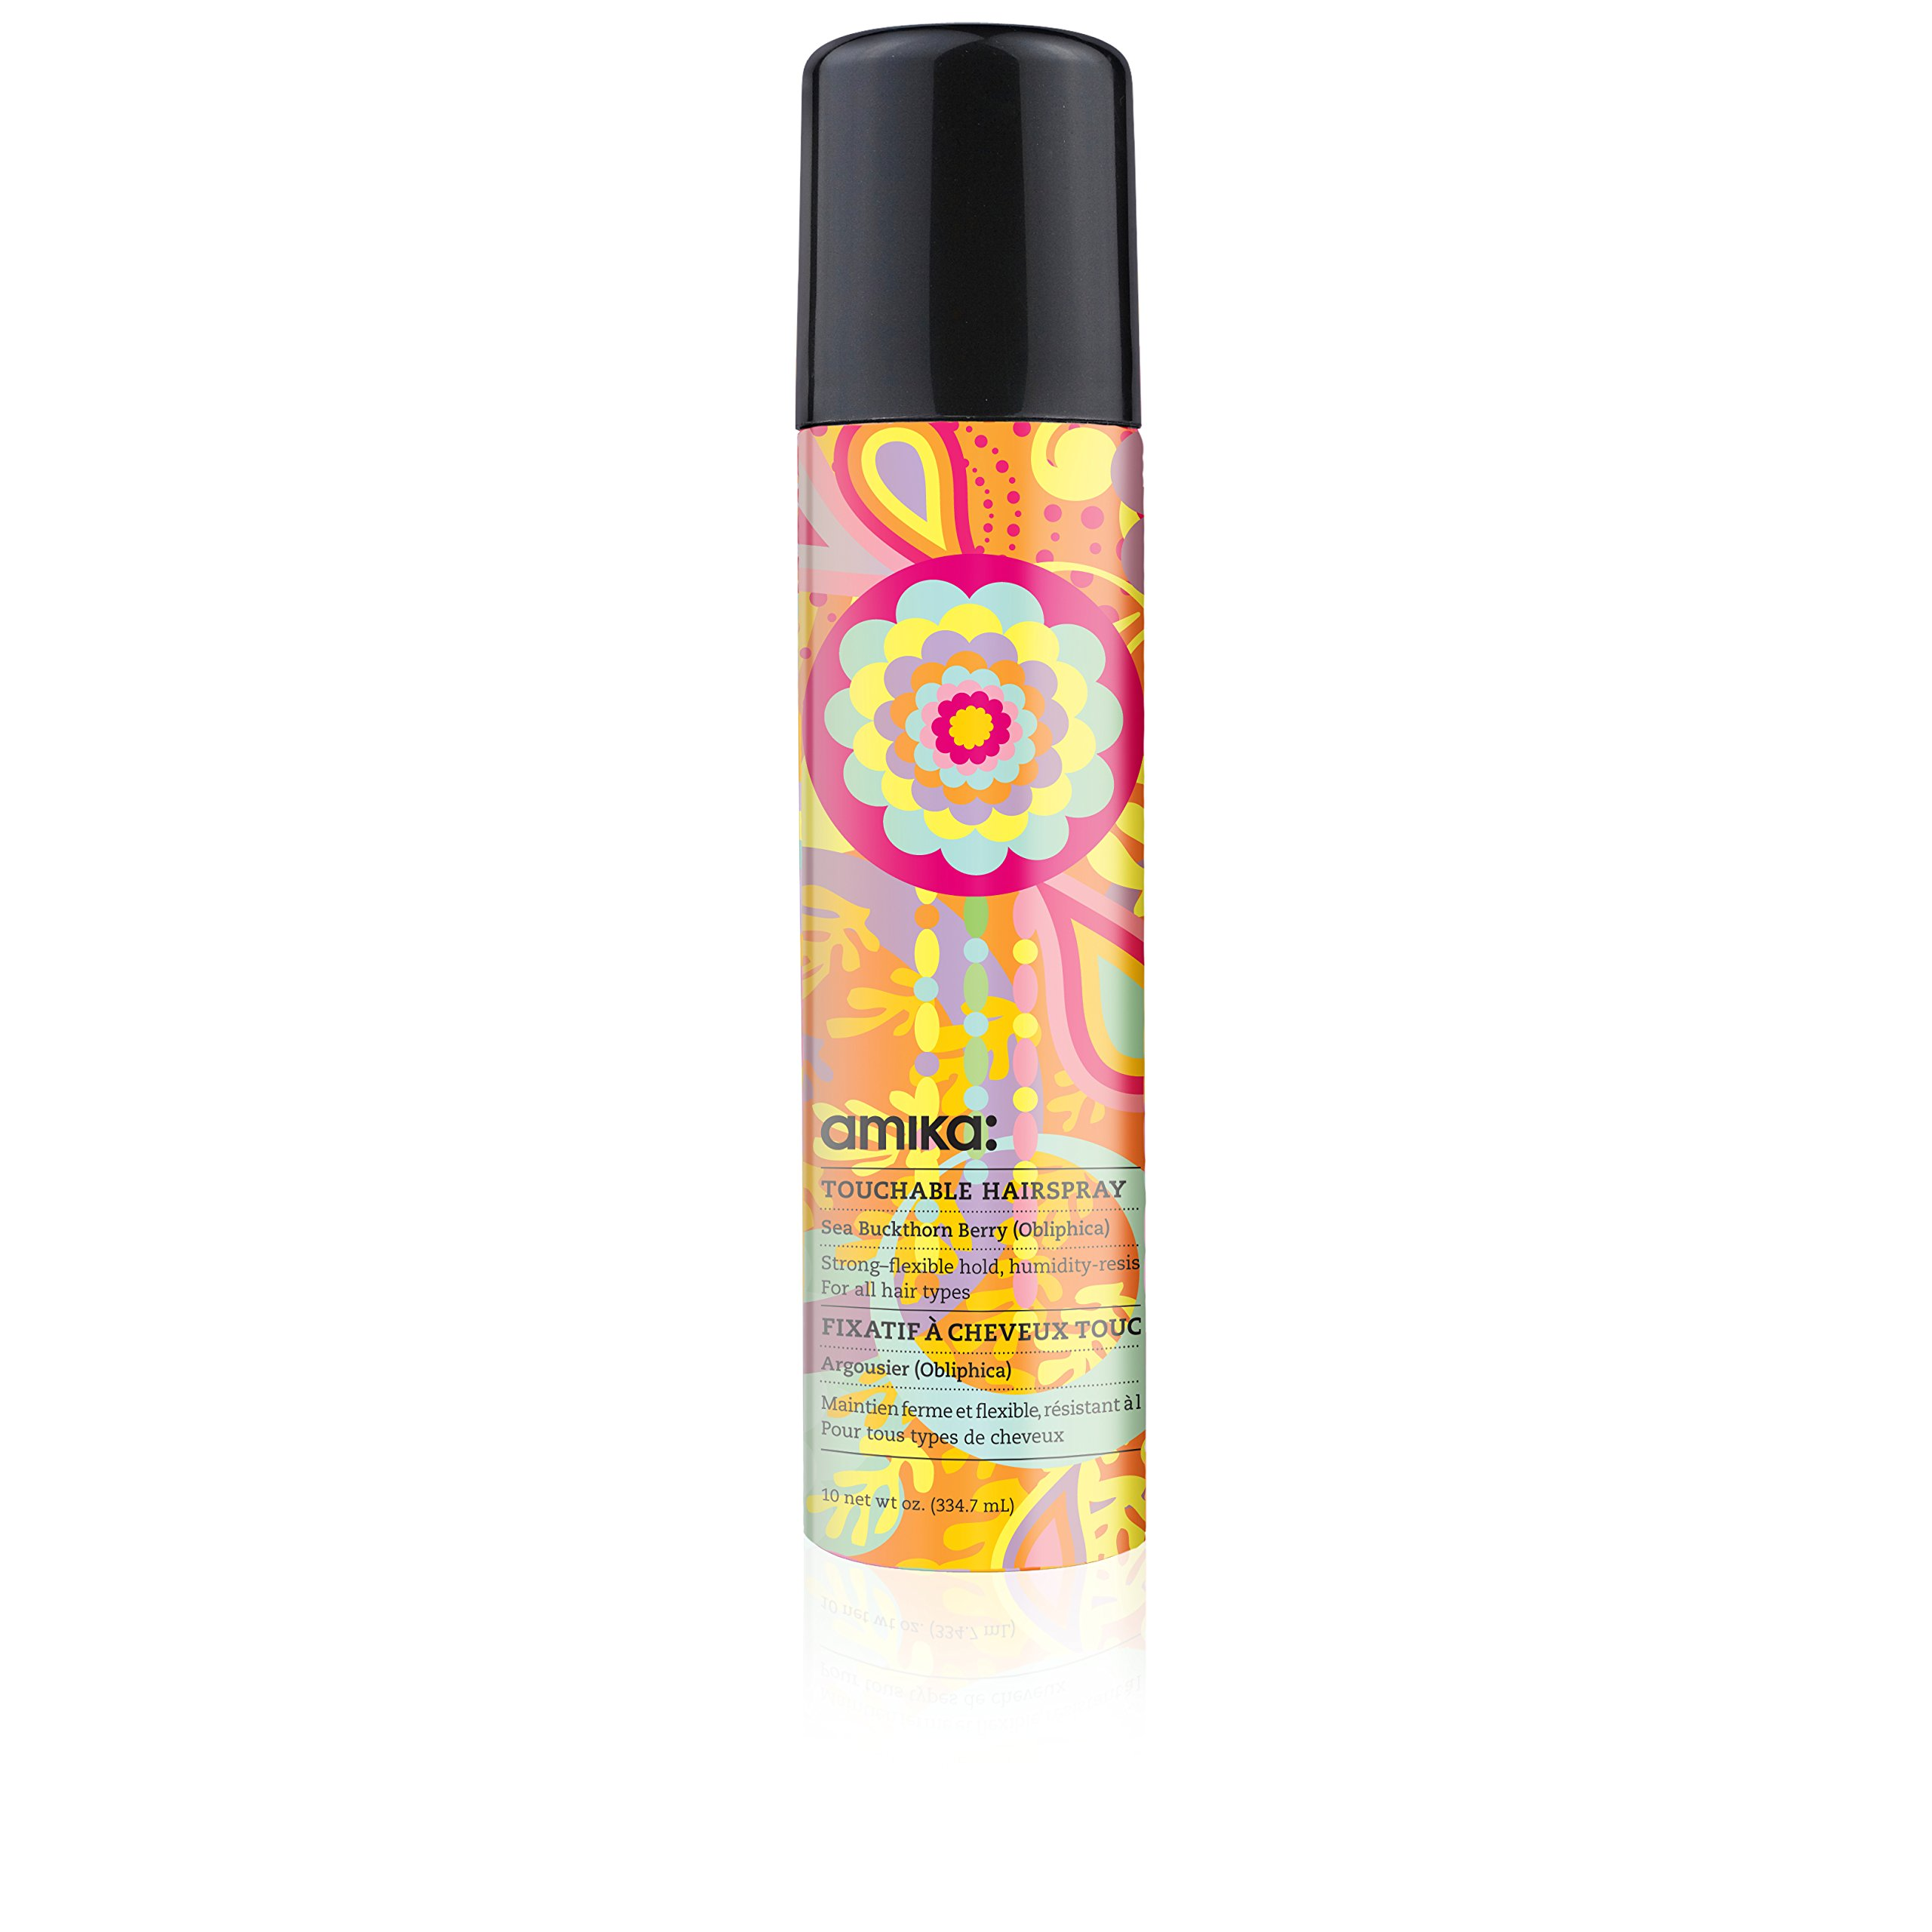 Amika Touchable Hair Spray, 10 Oz by amika